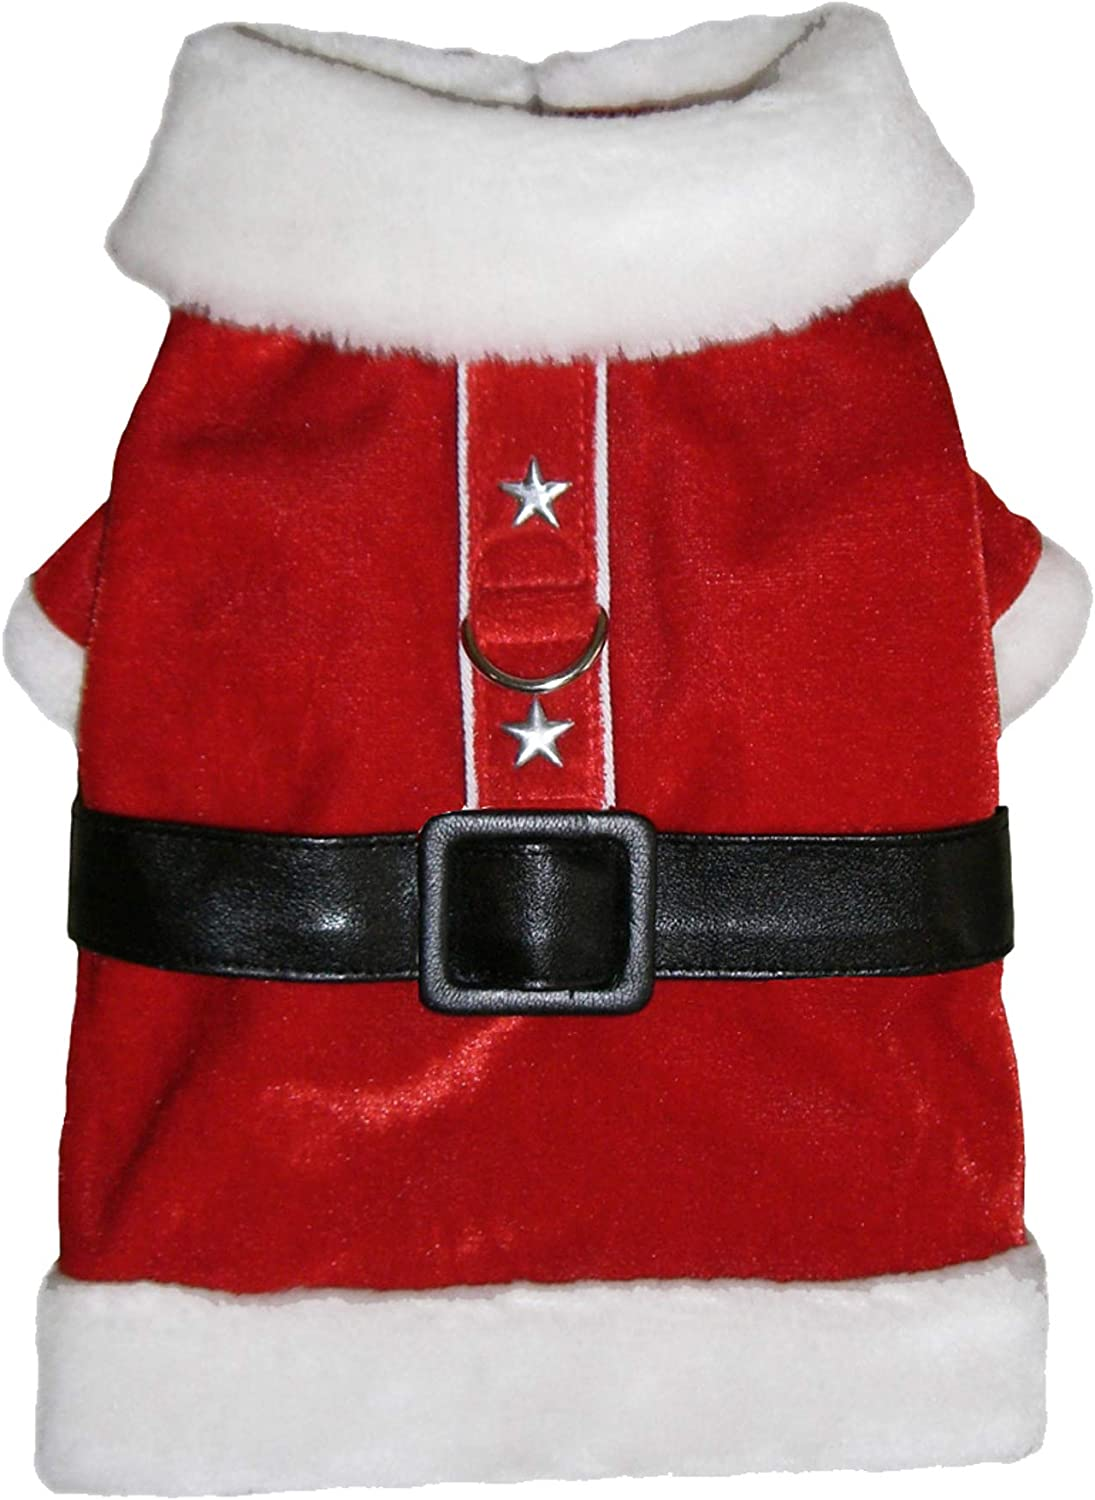 Collar Slider Tie Bow Tie Pajamas and Hat Pooch Outfitters Dog Christmas Outfit Collection Great for Family Xmas Card Photos Dress Scarf Coat